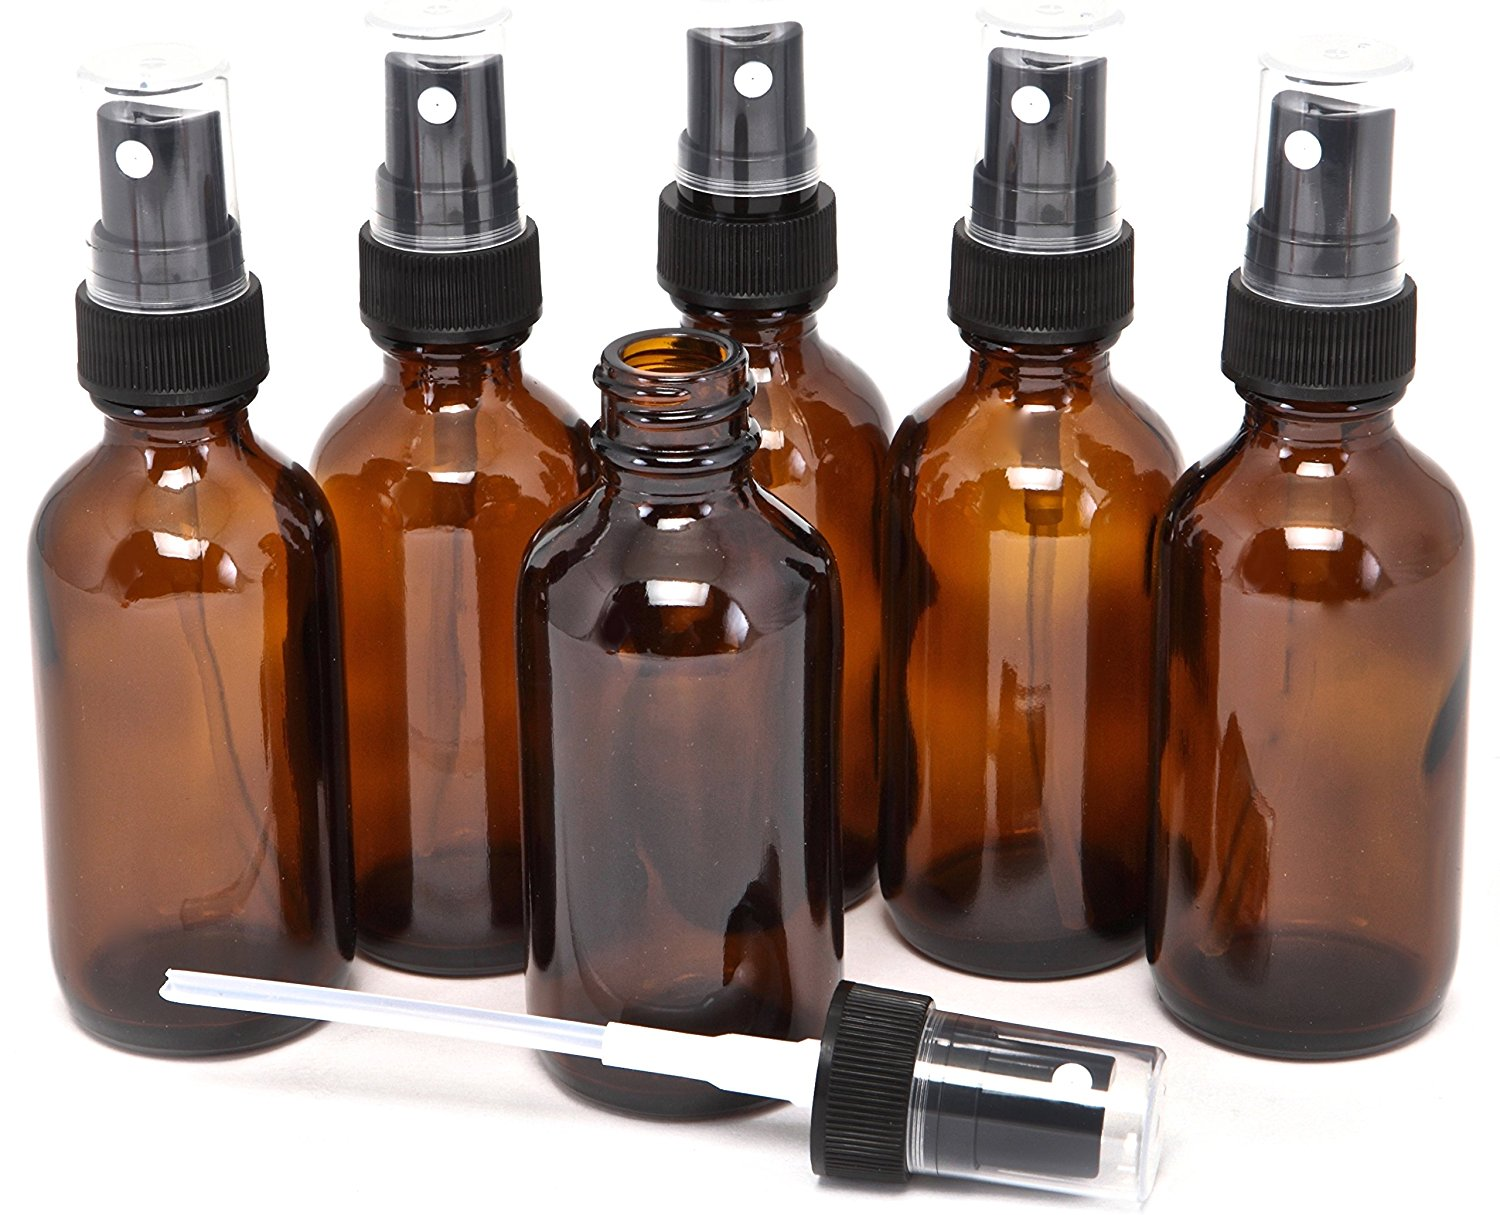 Essential Oil Basic Supplies For Beginners The Creek